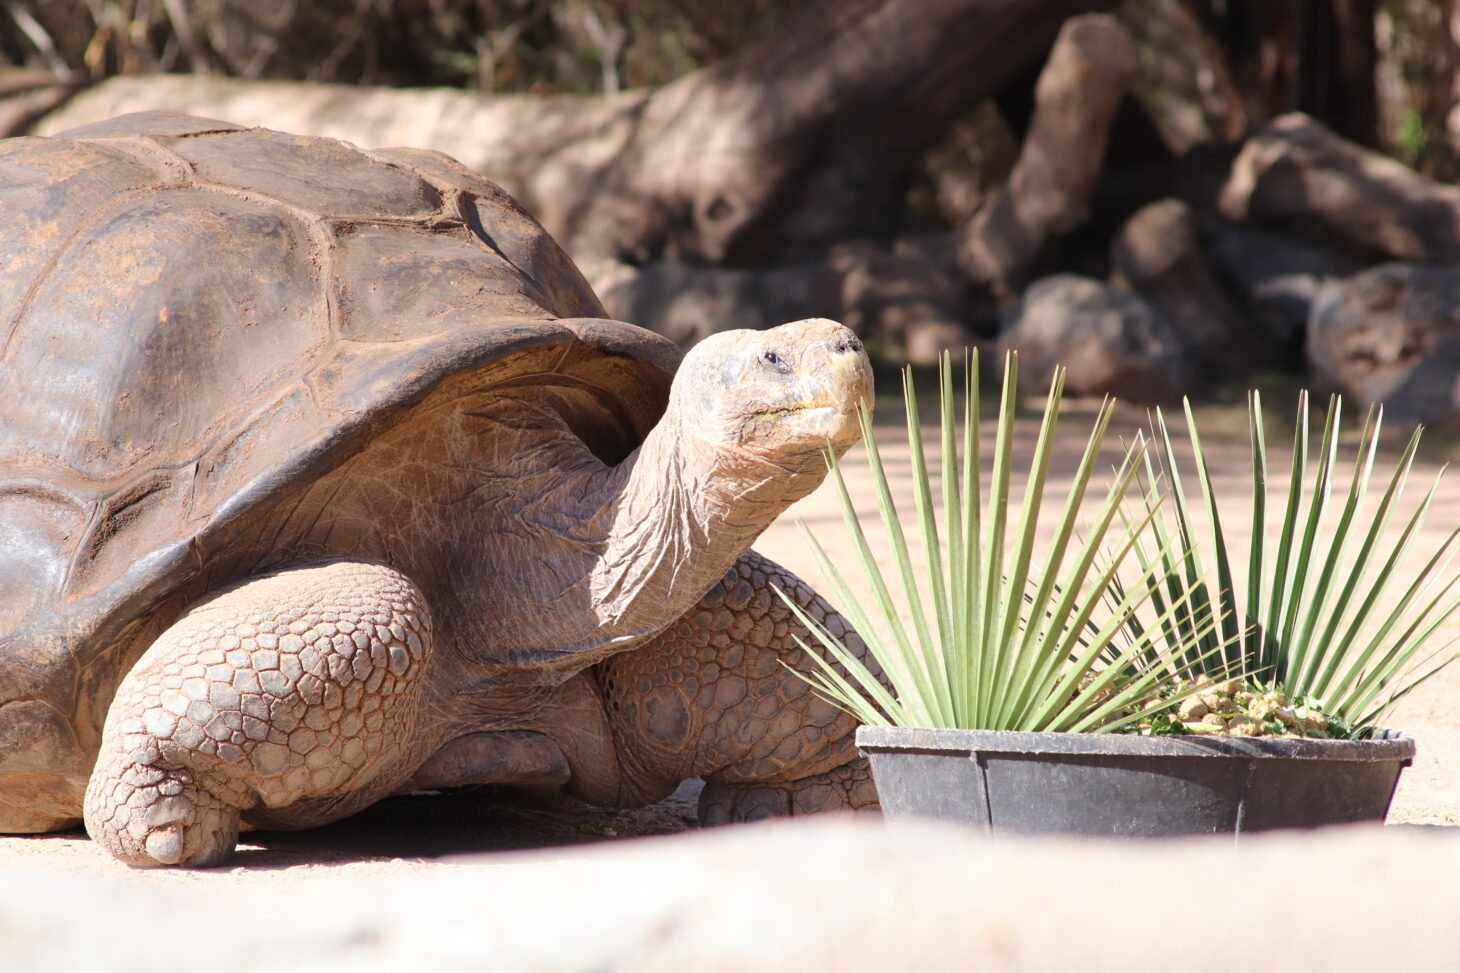 Ralph first came to the El Paso Zoo in 2016 after transferring from the Phoenix Zoo as part of a species survival plan from the Association of Zoos and Aquariums.